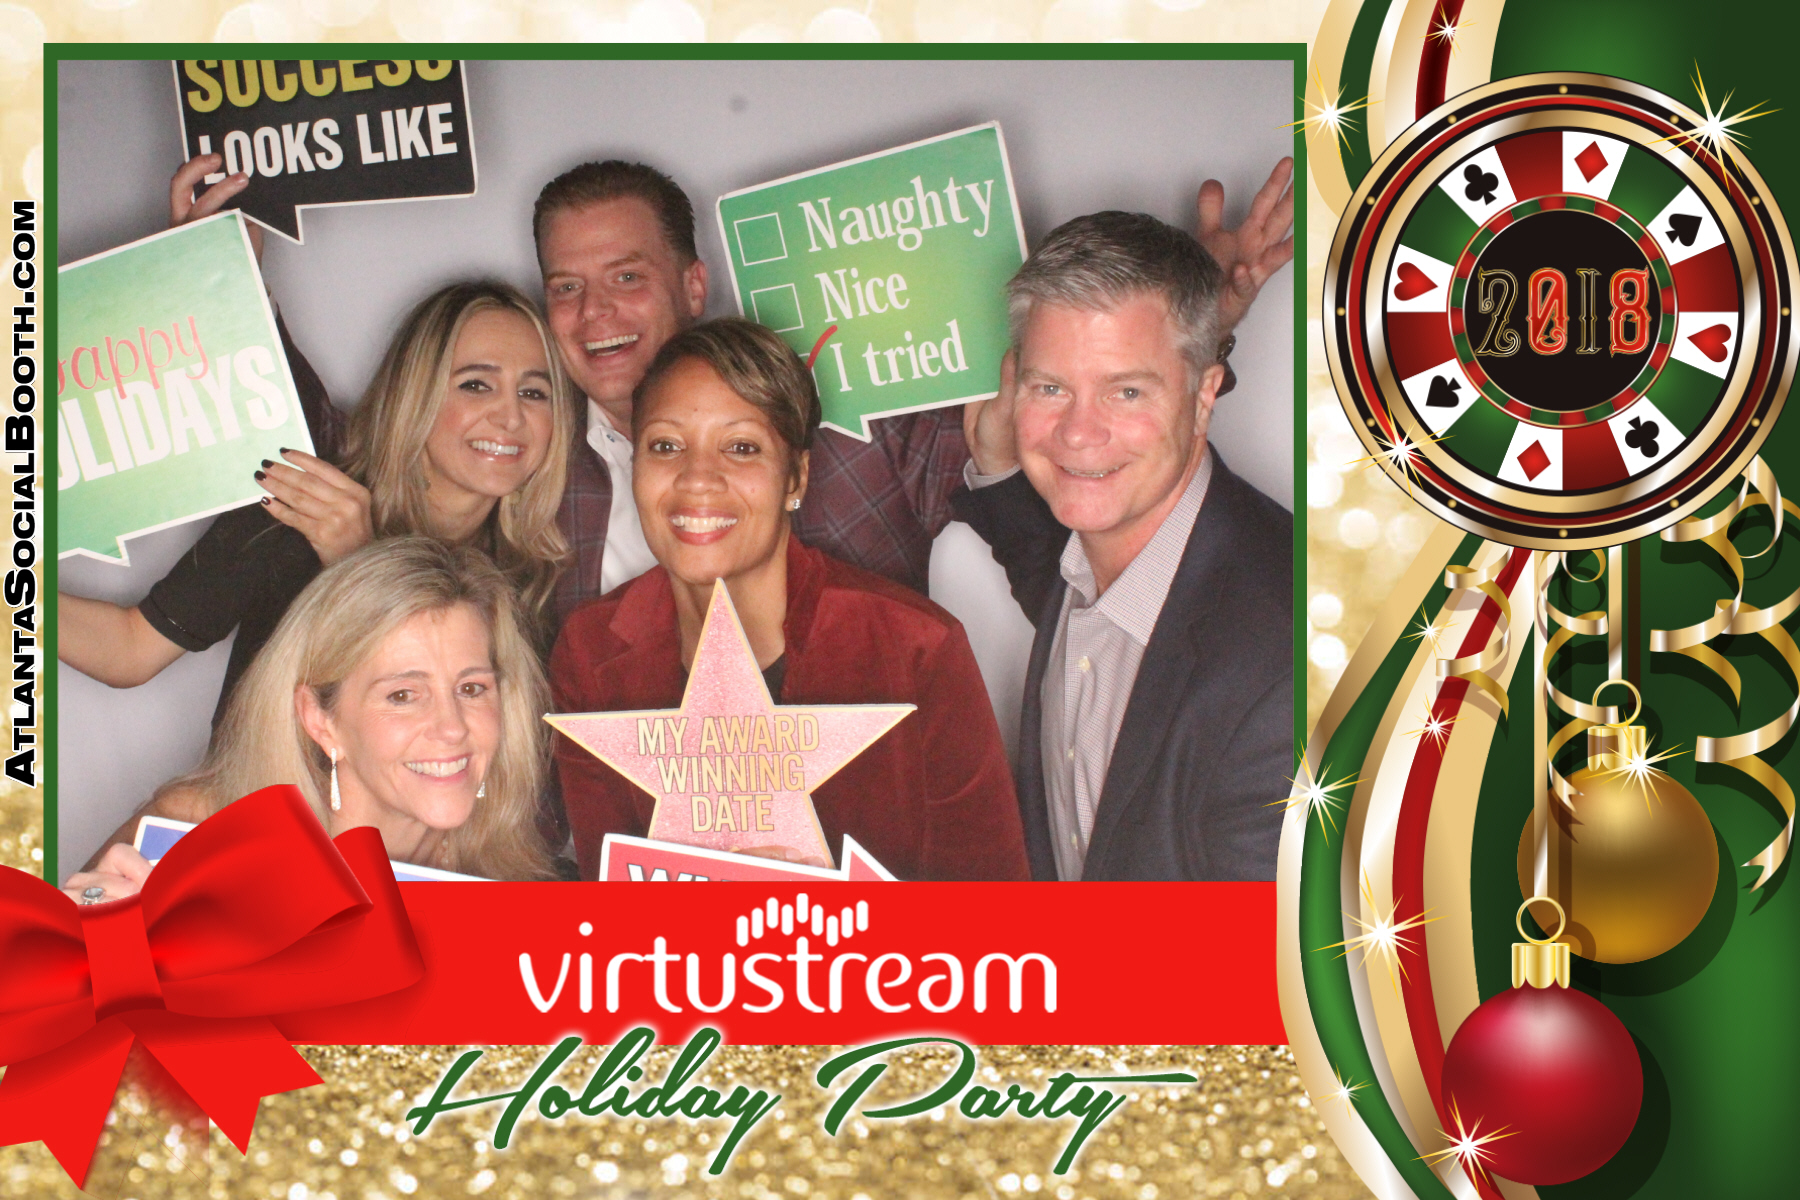 VirtuStream Holiday Party